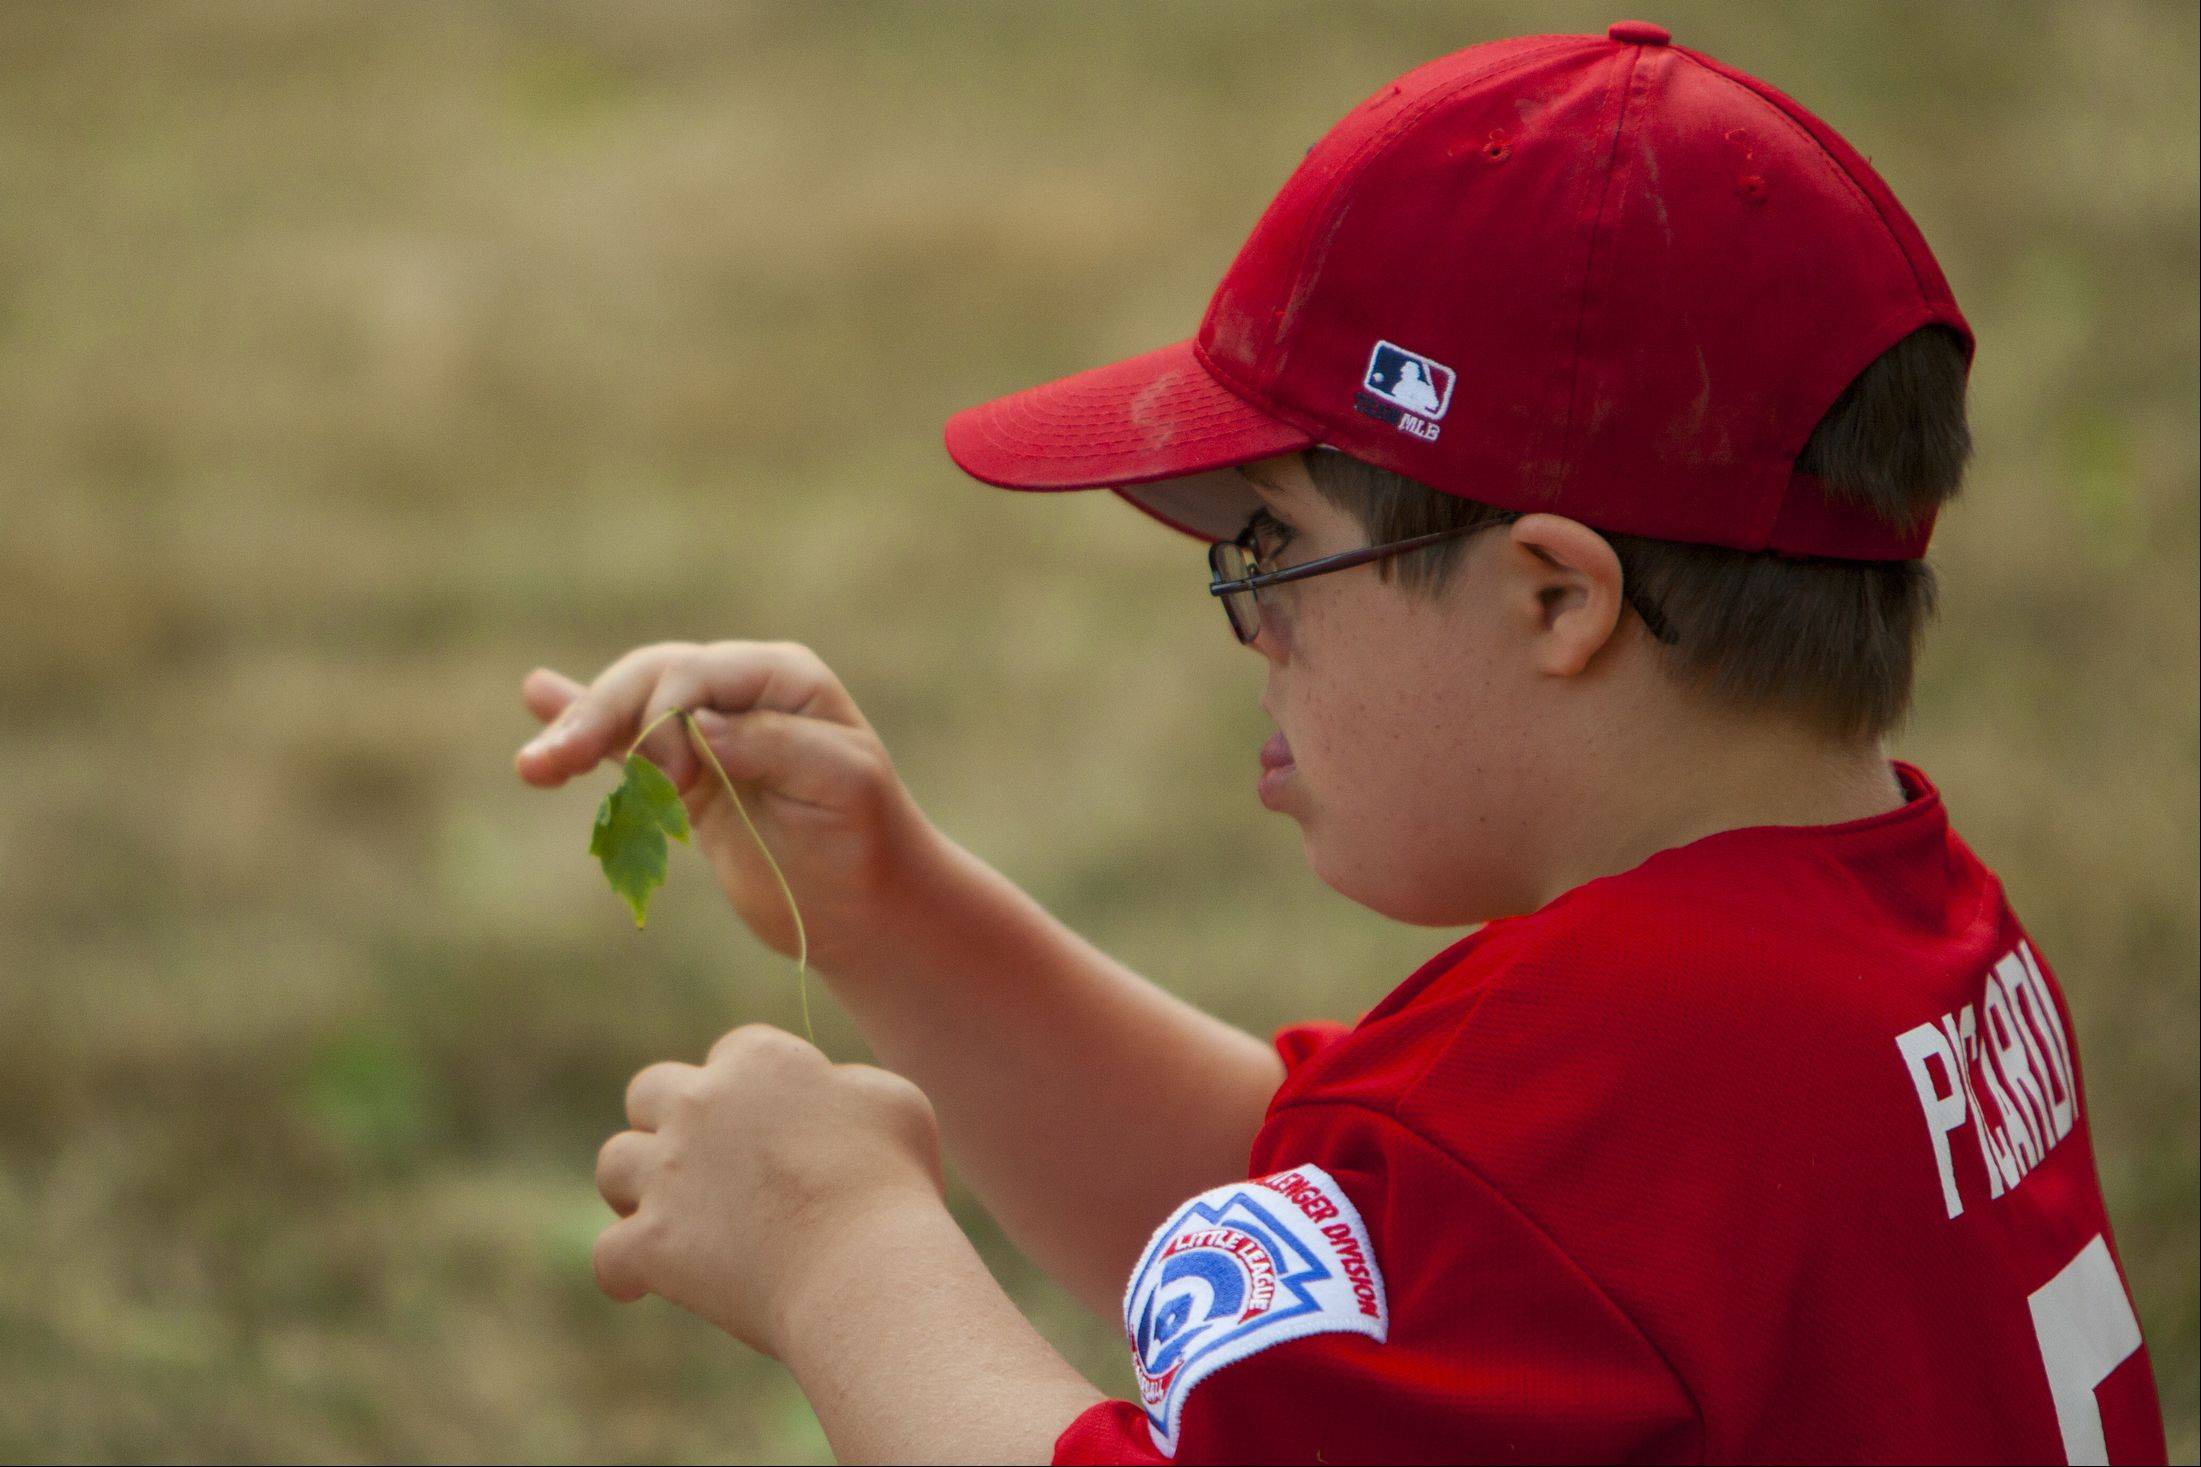 Joe Picardi plays with a piece of grass during the Bartlett Little League Challenger Division end-of-year party and trophy presentation.